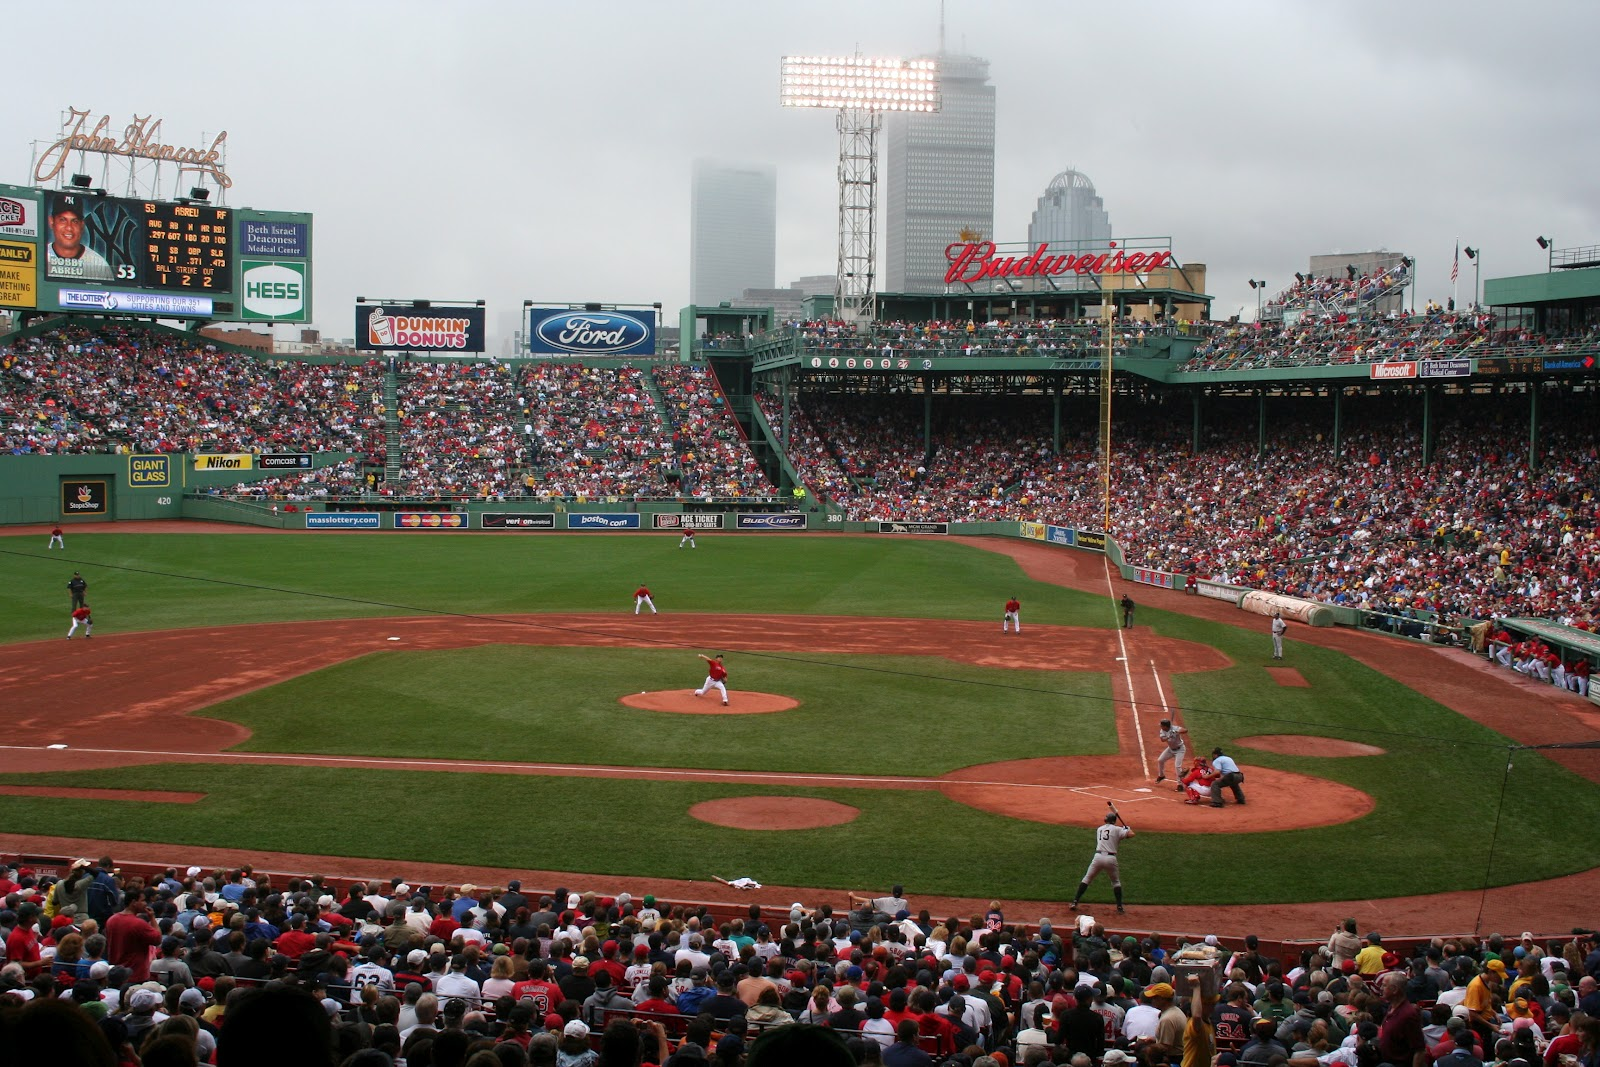 fenway park and parks - photo #44